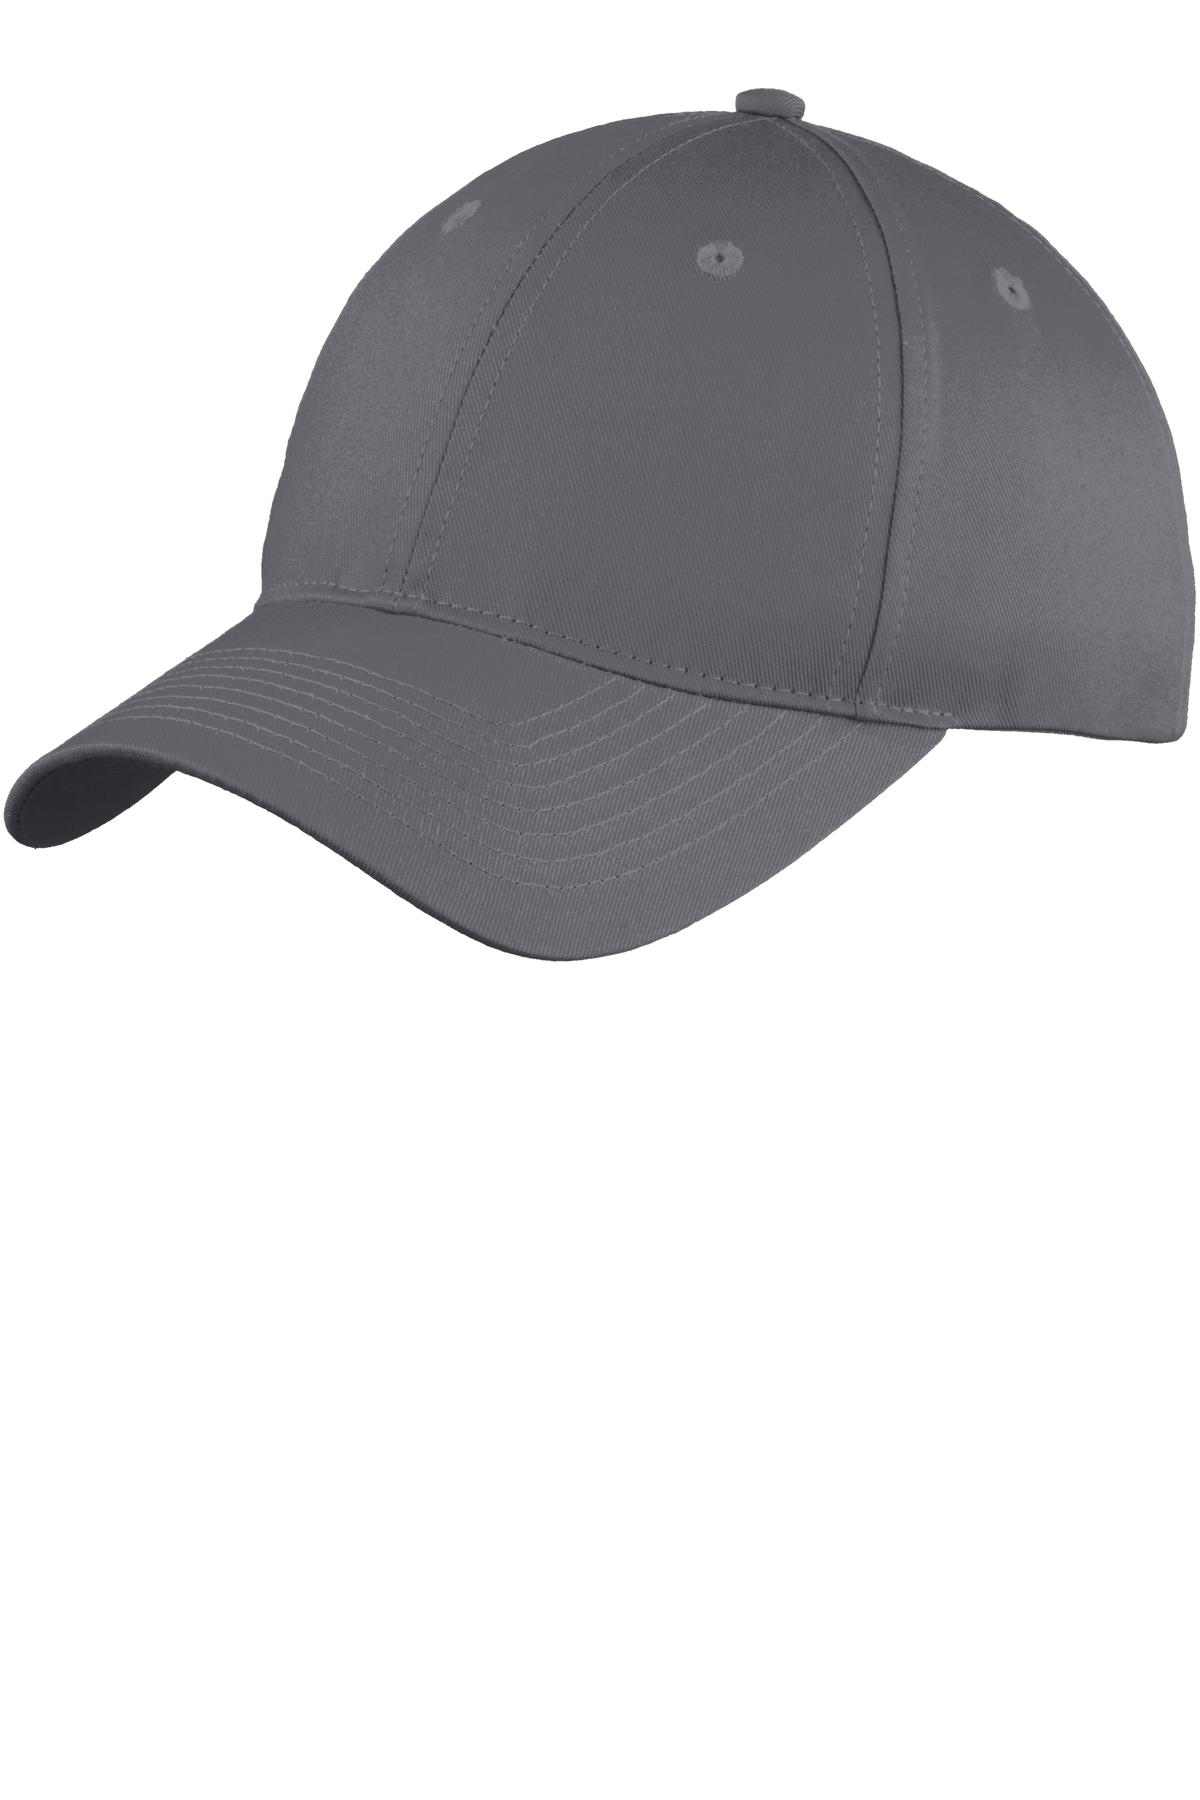 Port & Company ®  Six-Panel Unstructured Twill Cap. C914 - Charcoal